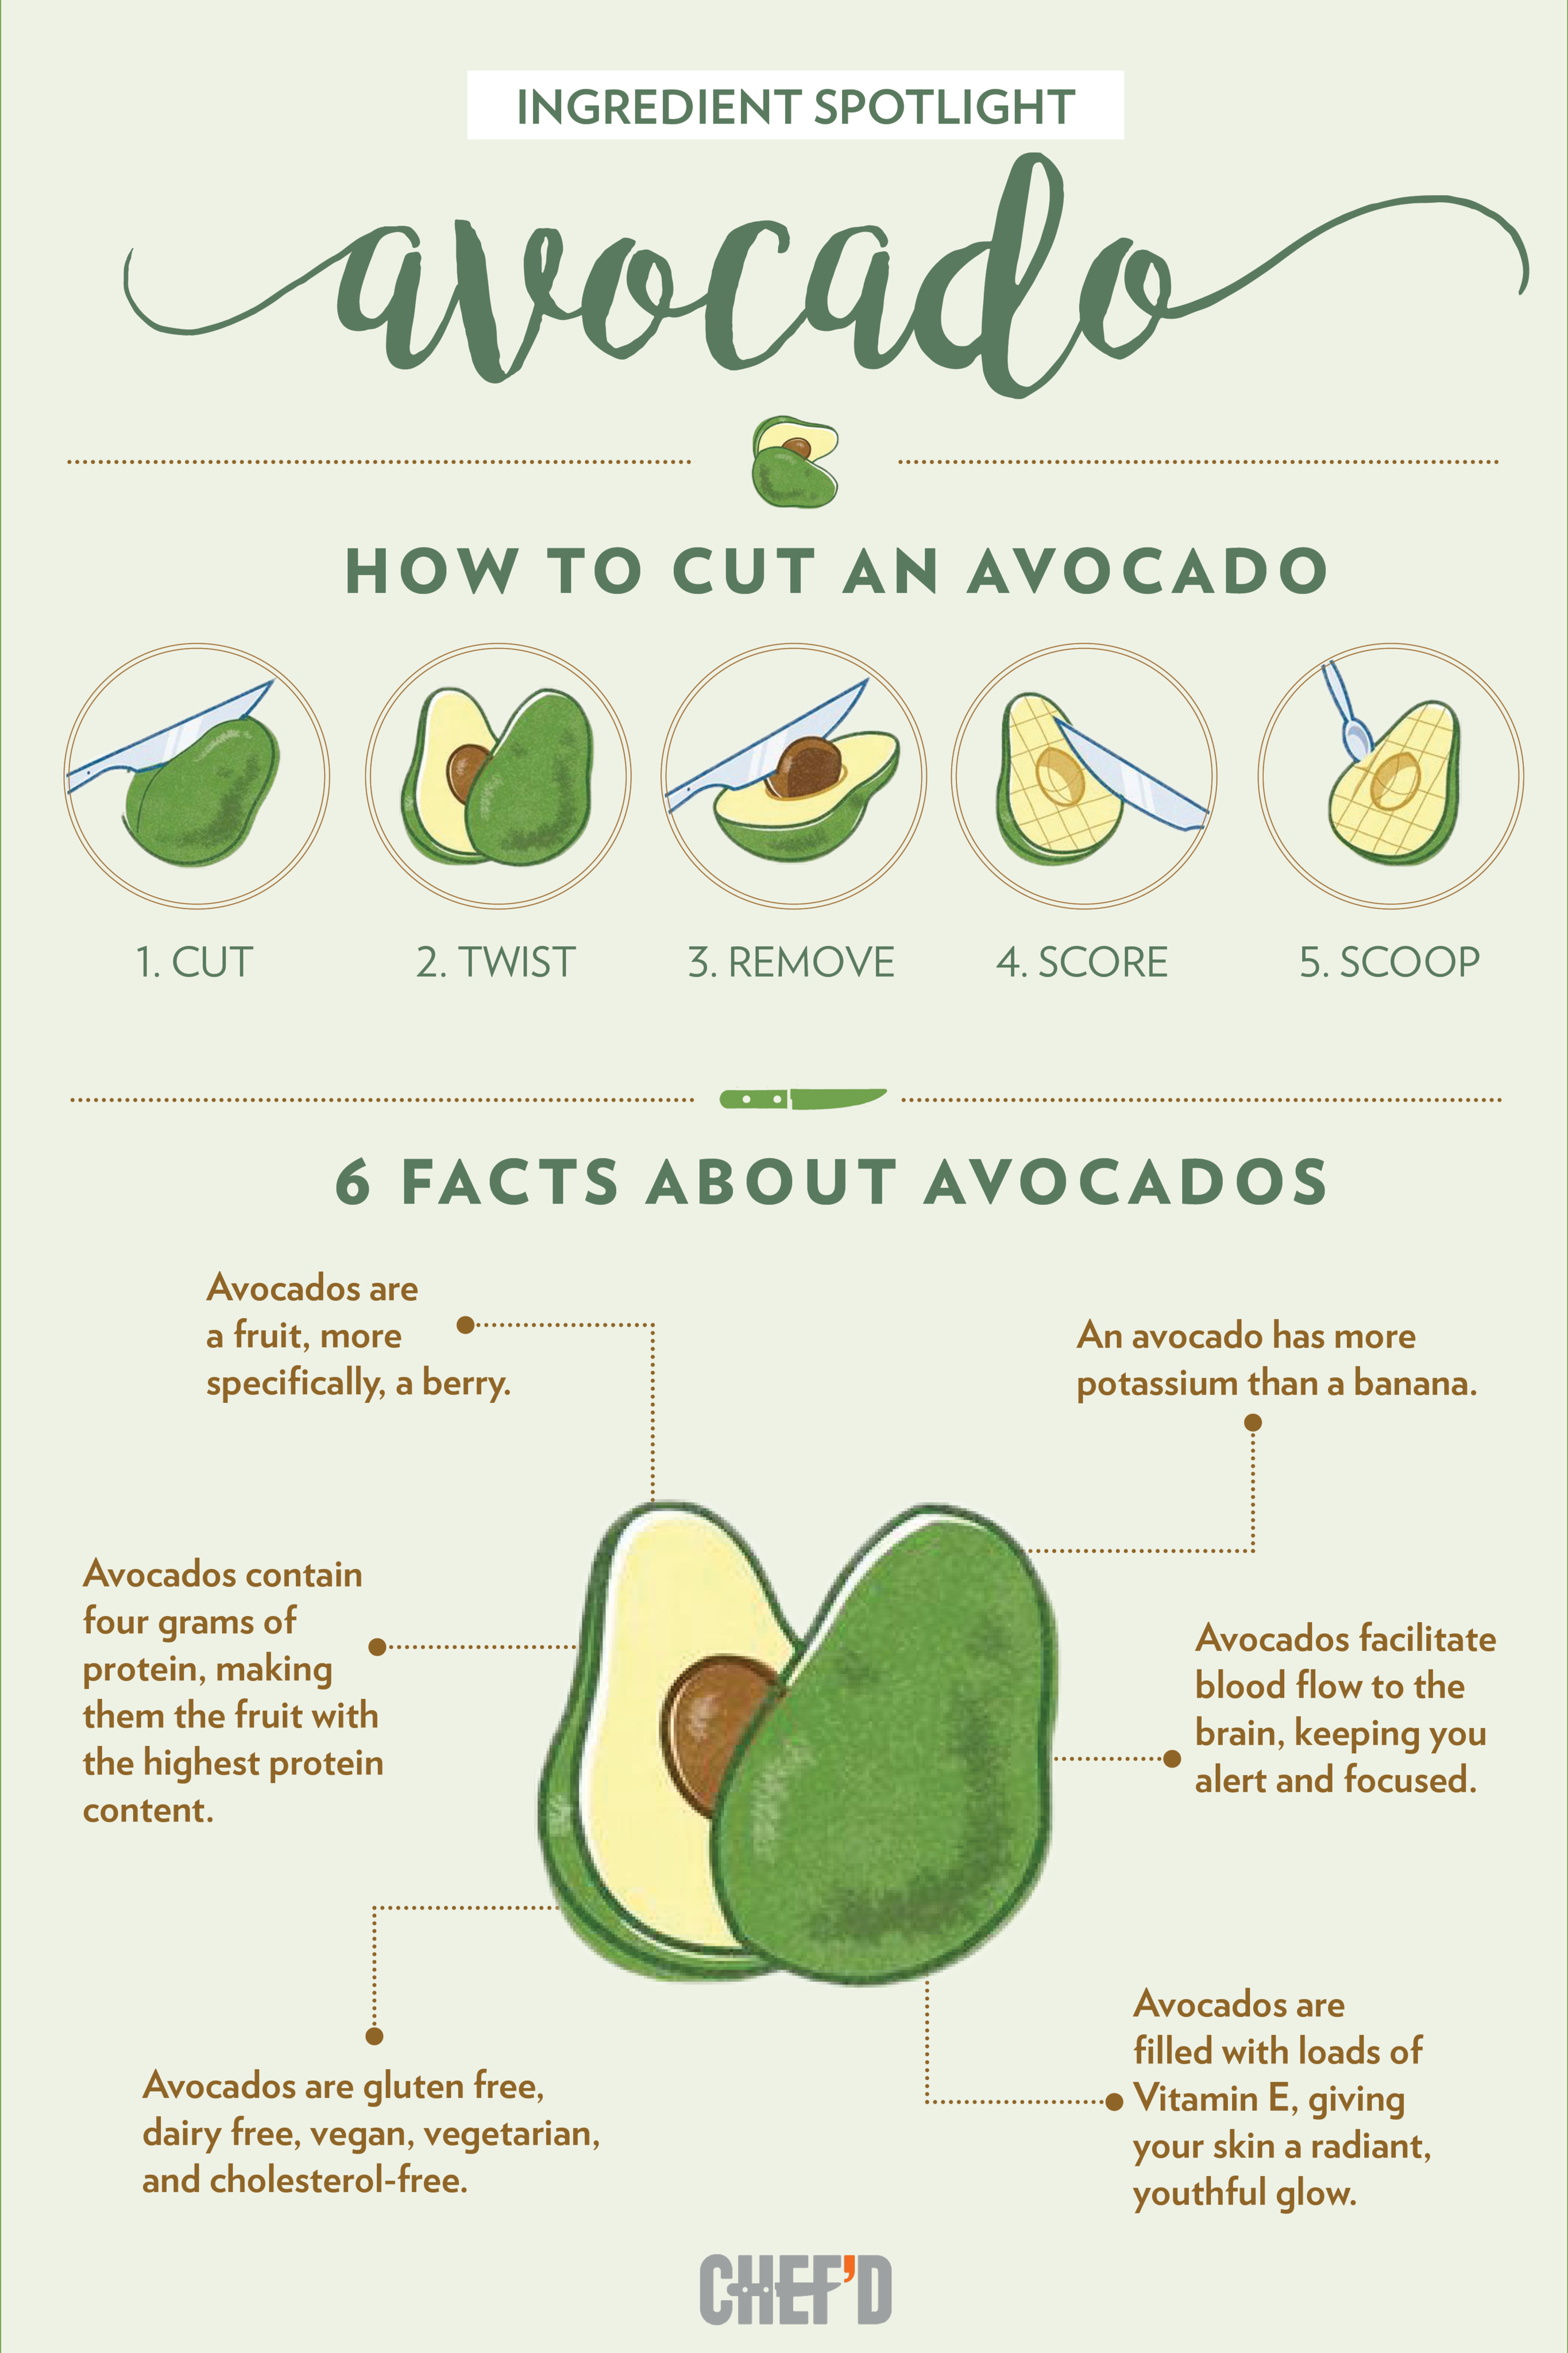 6 Surprising Facts About Avocados